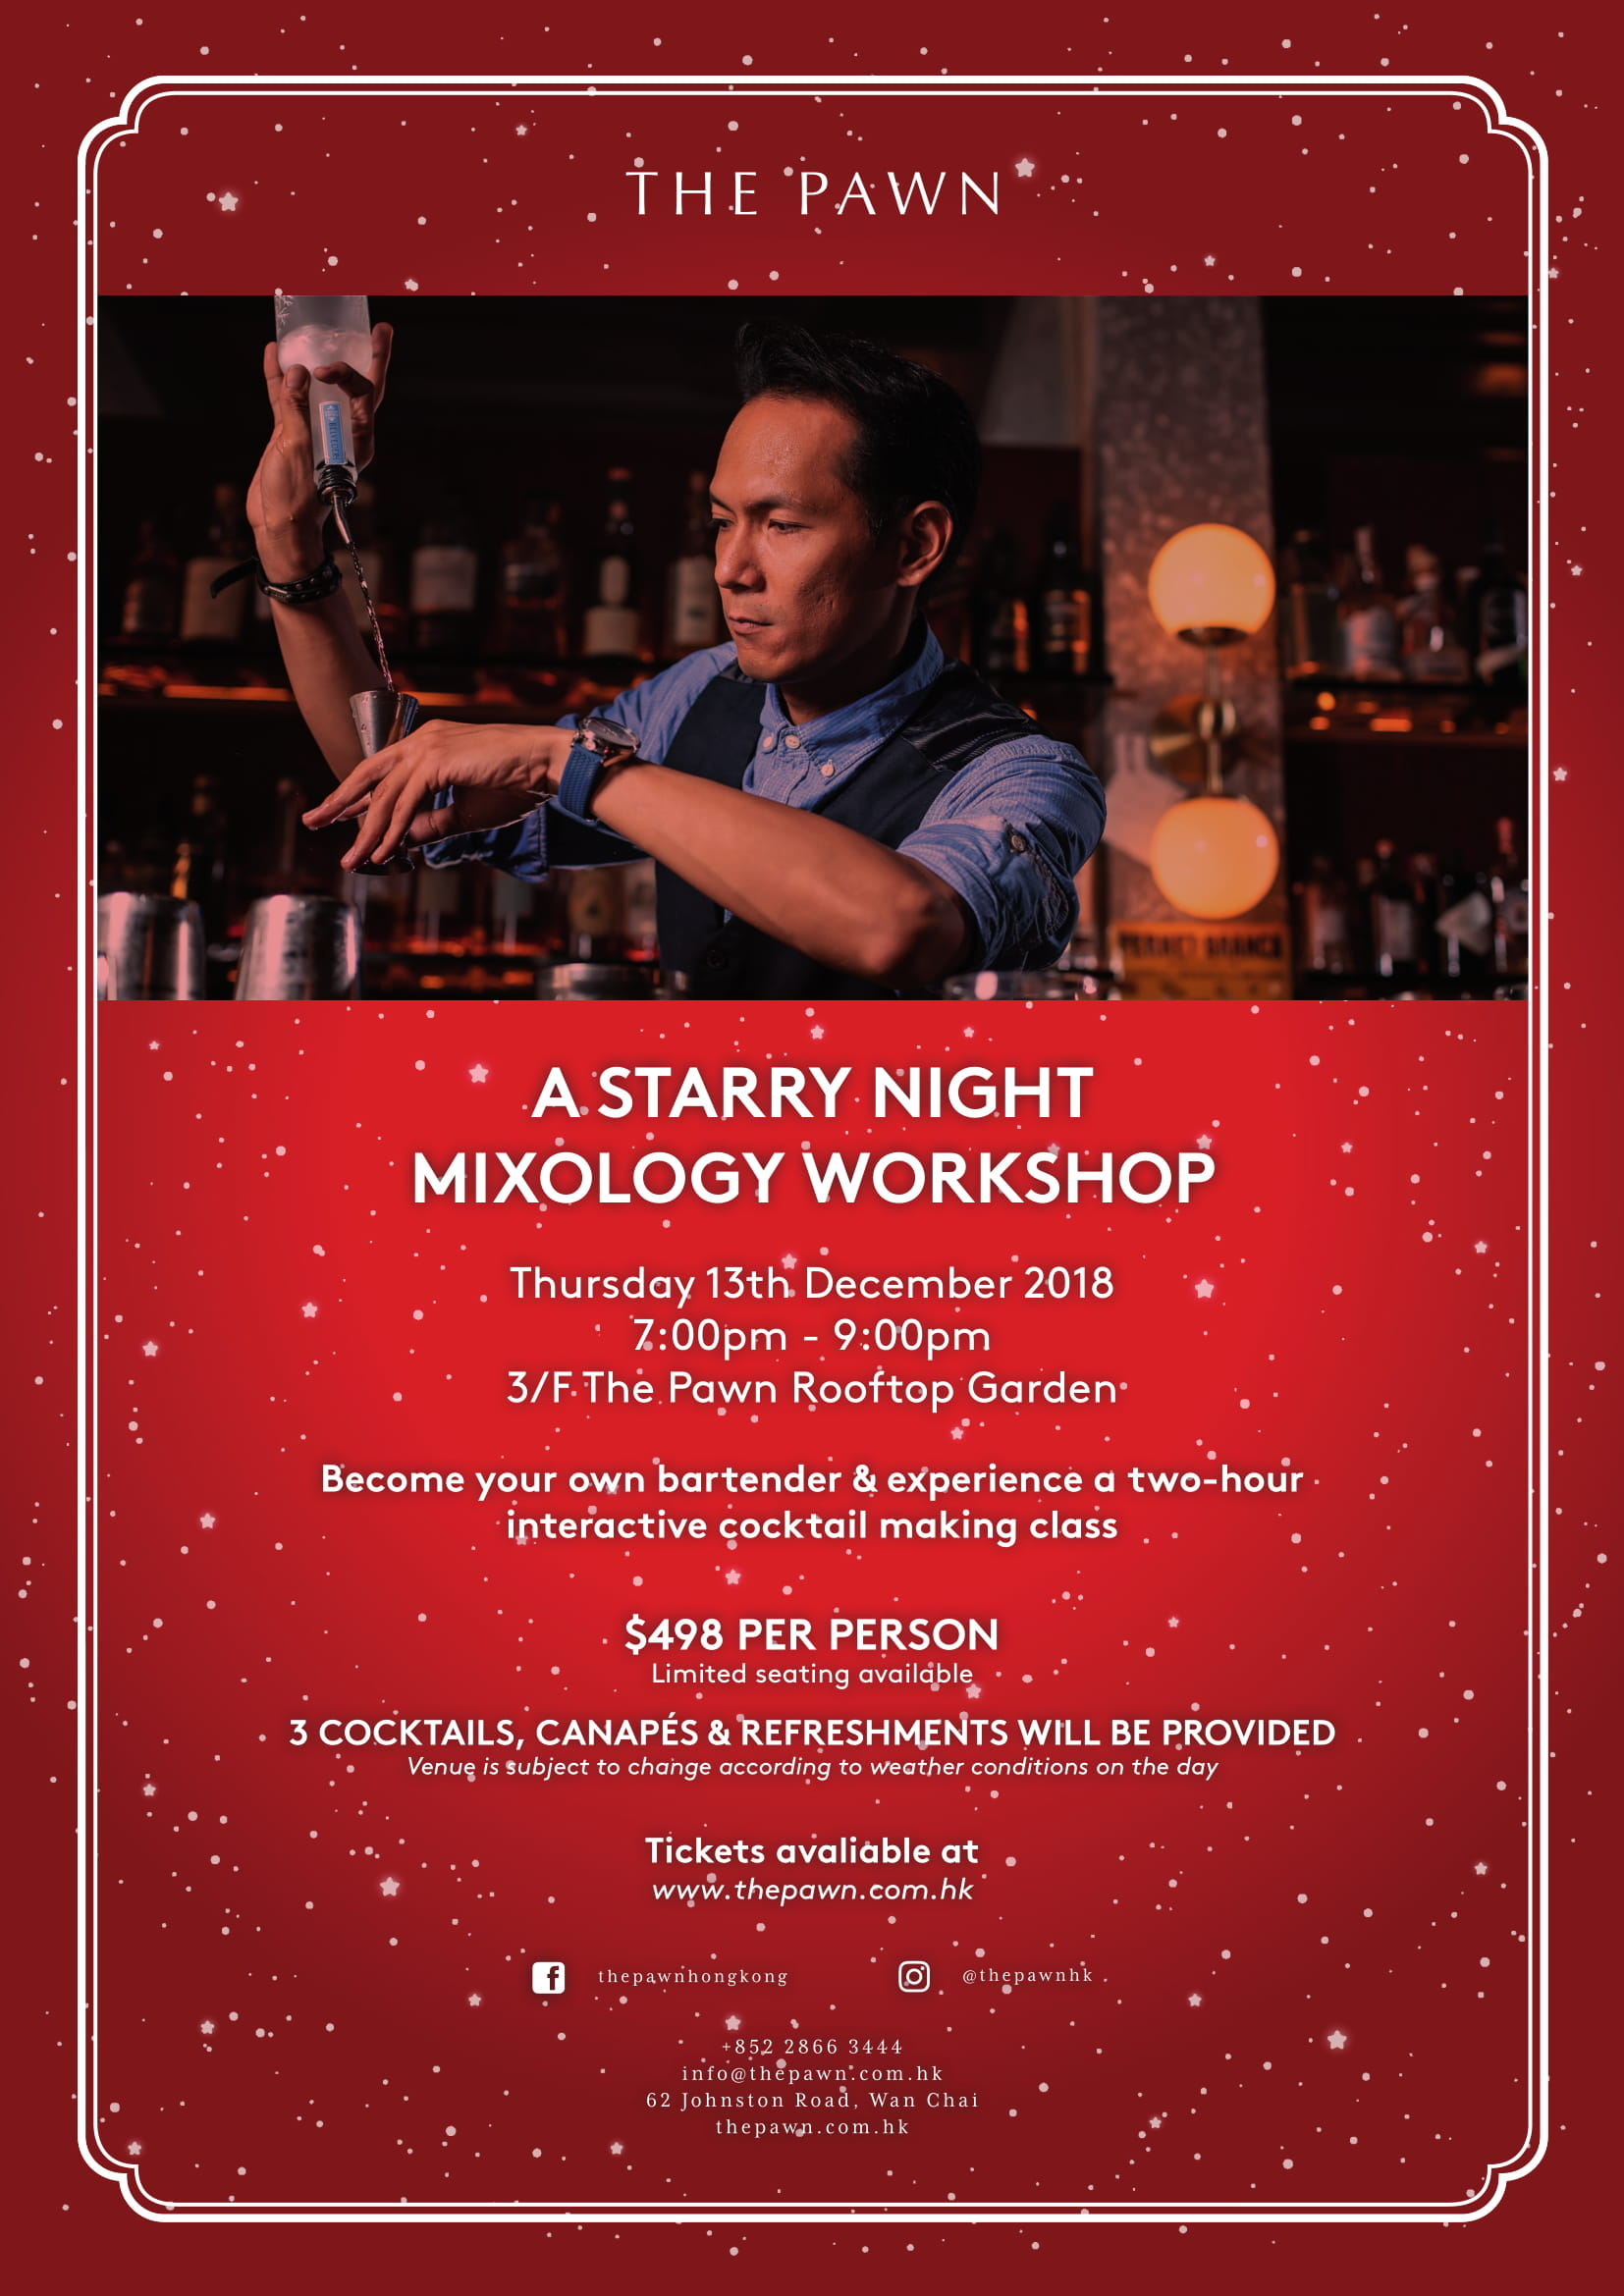 The Pawn Starry Night Mixology Workshop